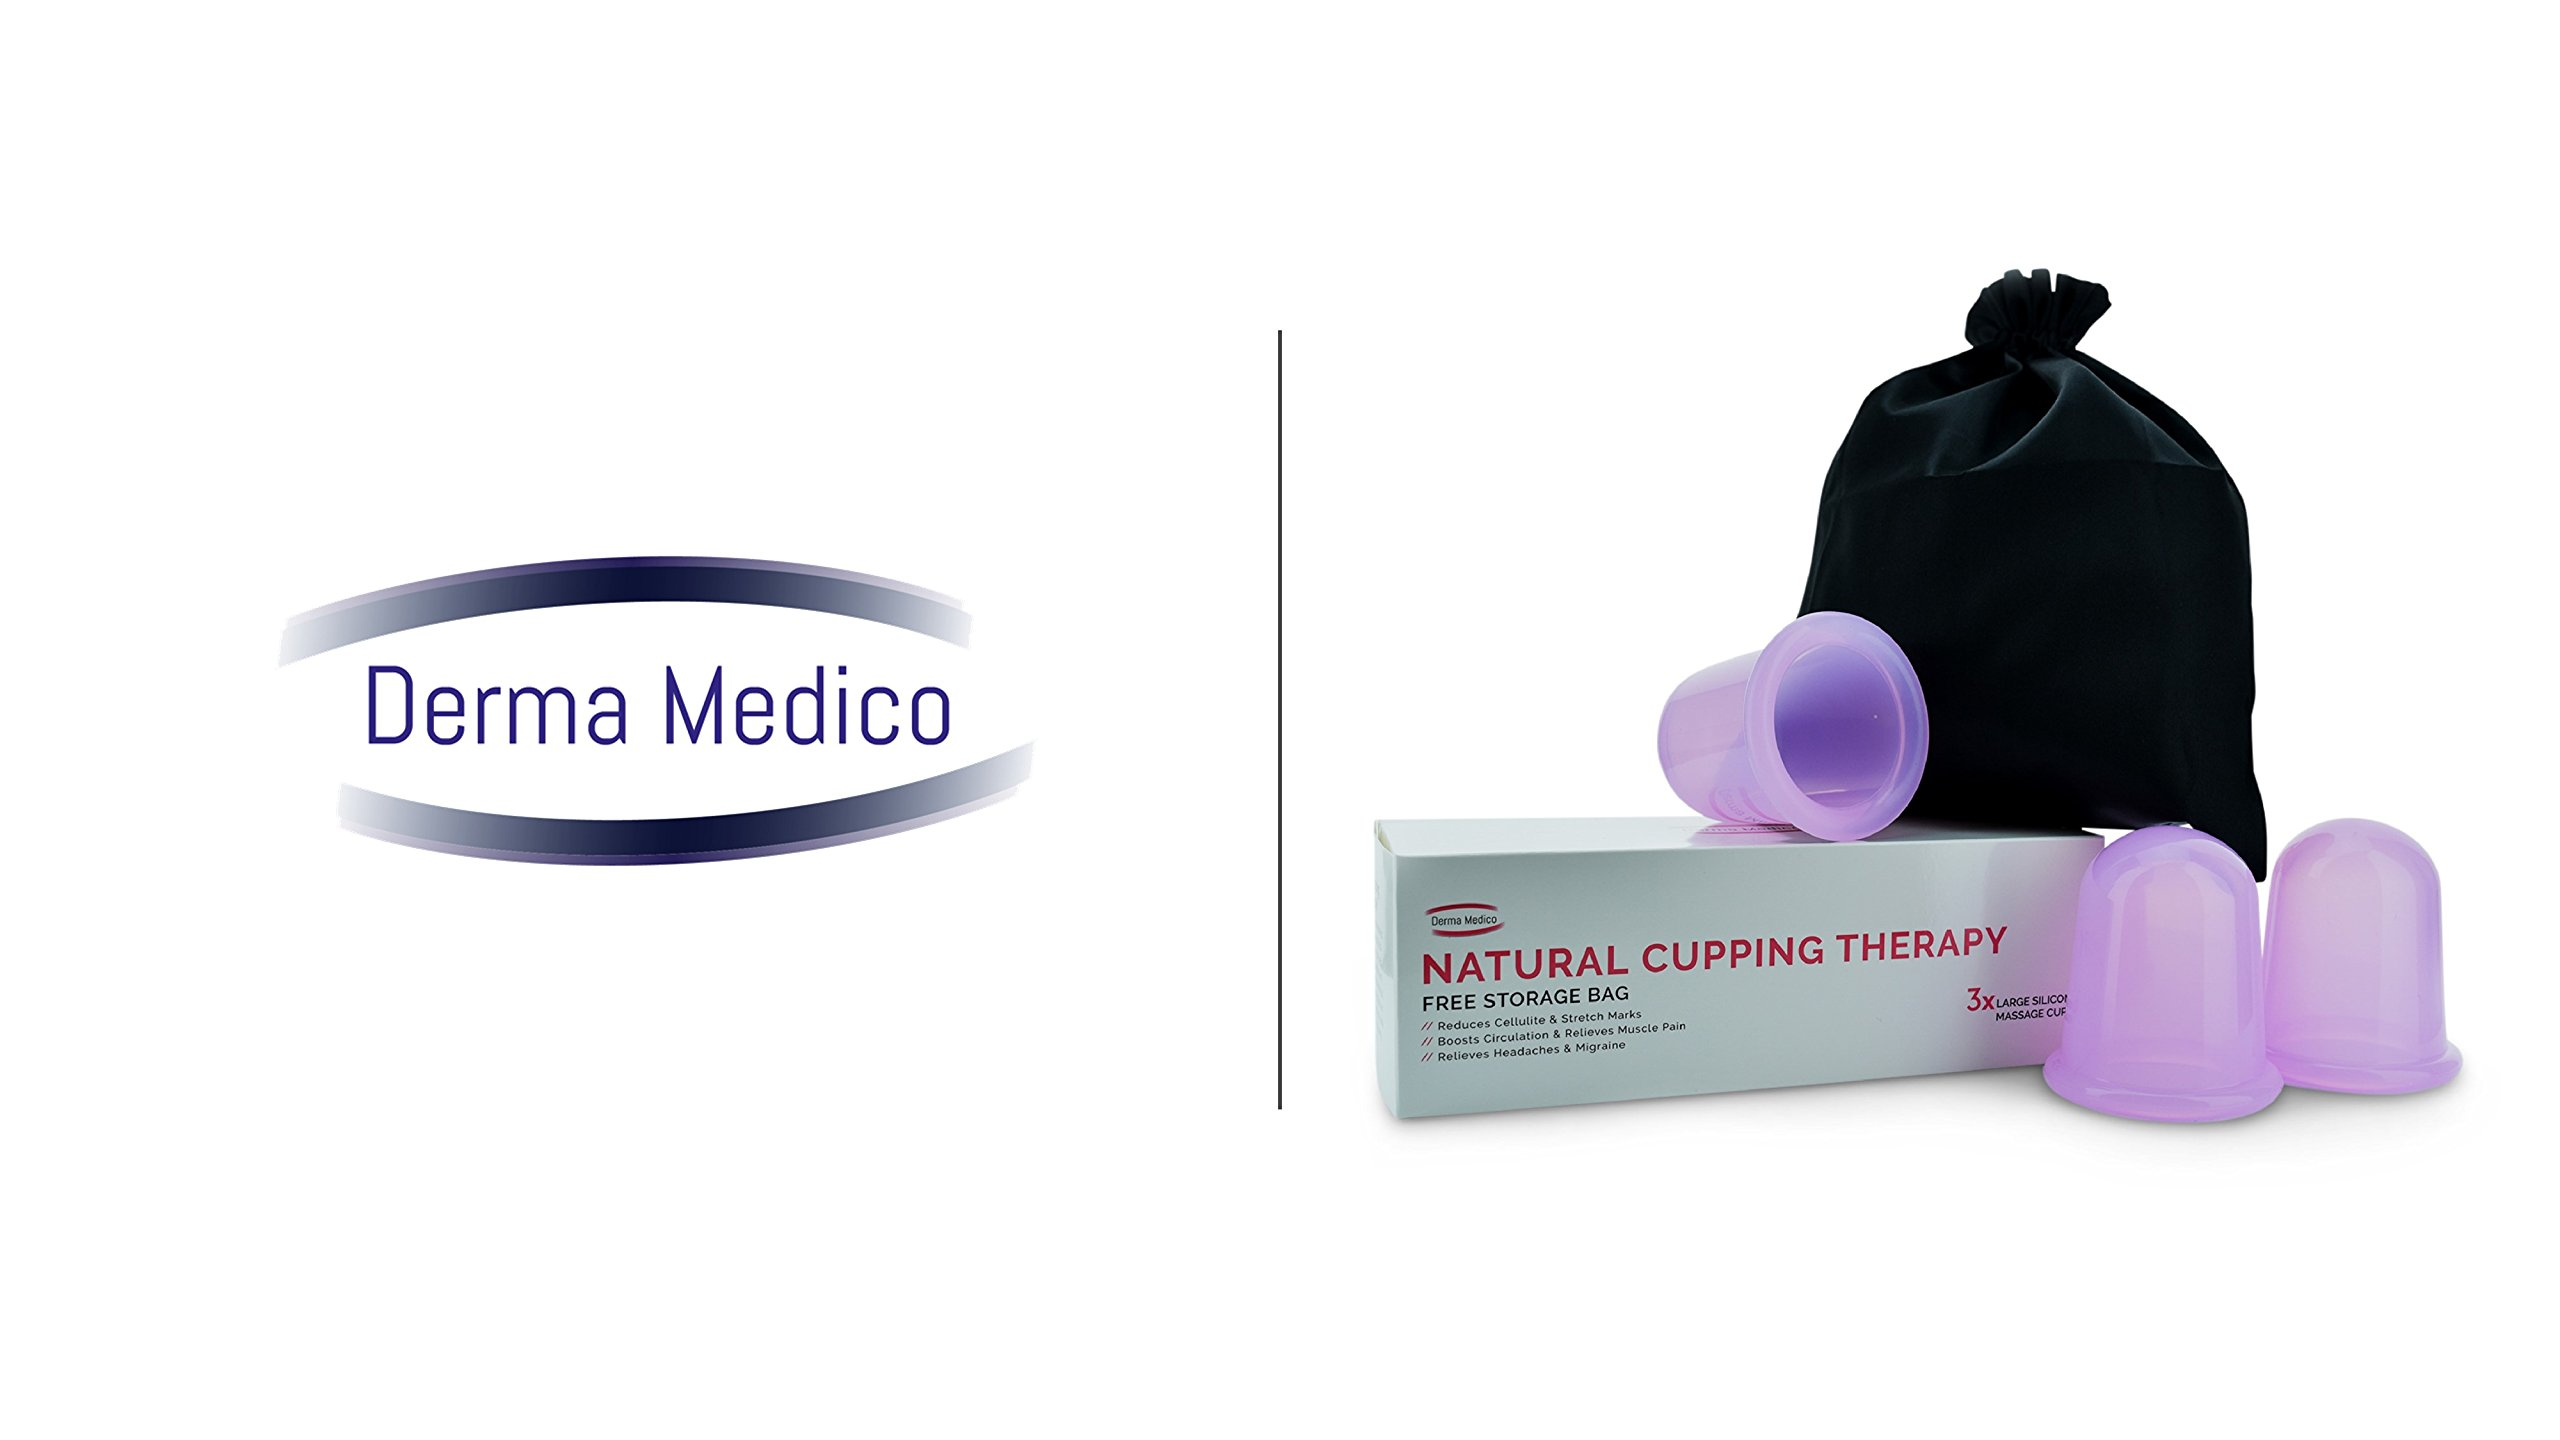 Derma Medico Silicone Body Massage Cups for Natural Cupping Therapy – Gift Box of 3 Large Vacuum Cups with FREE Storage Bag and Instructions – Reduces Cellulite and Stretch Marks, Relieves Muscle Pain – Promotes Relaxation and Relieves Stre